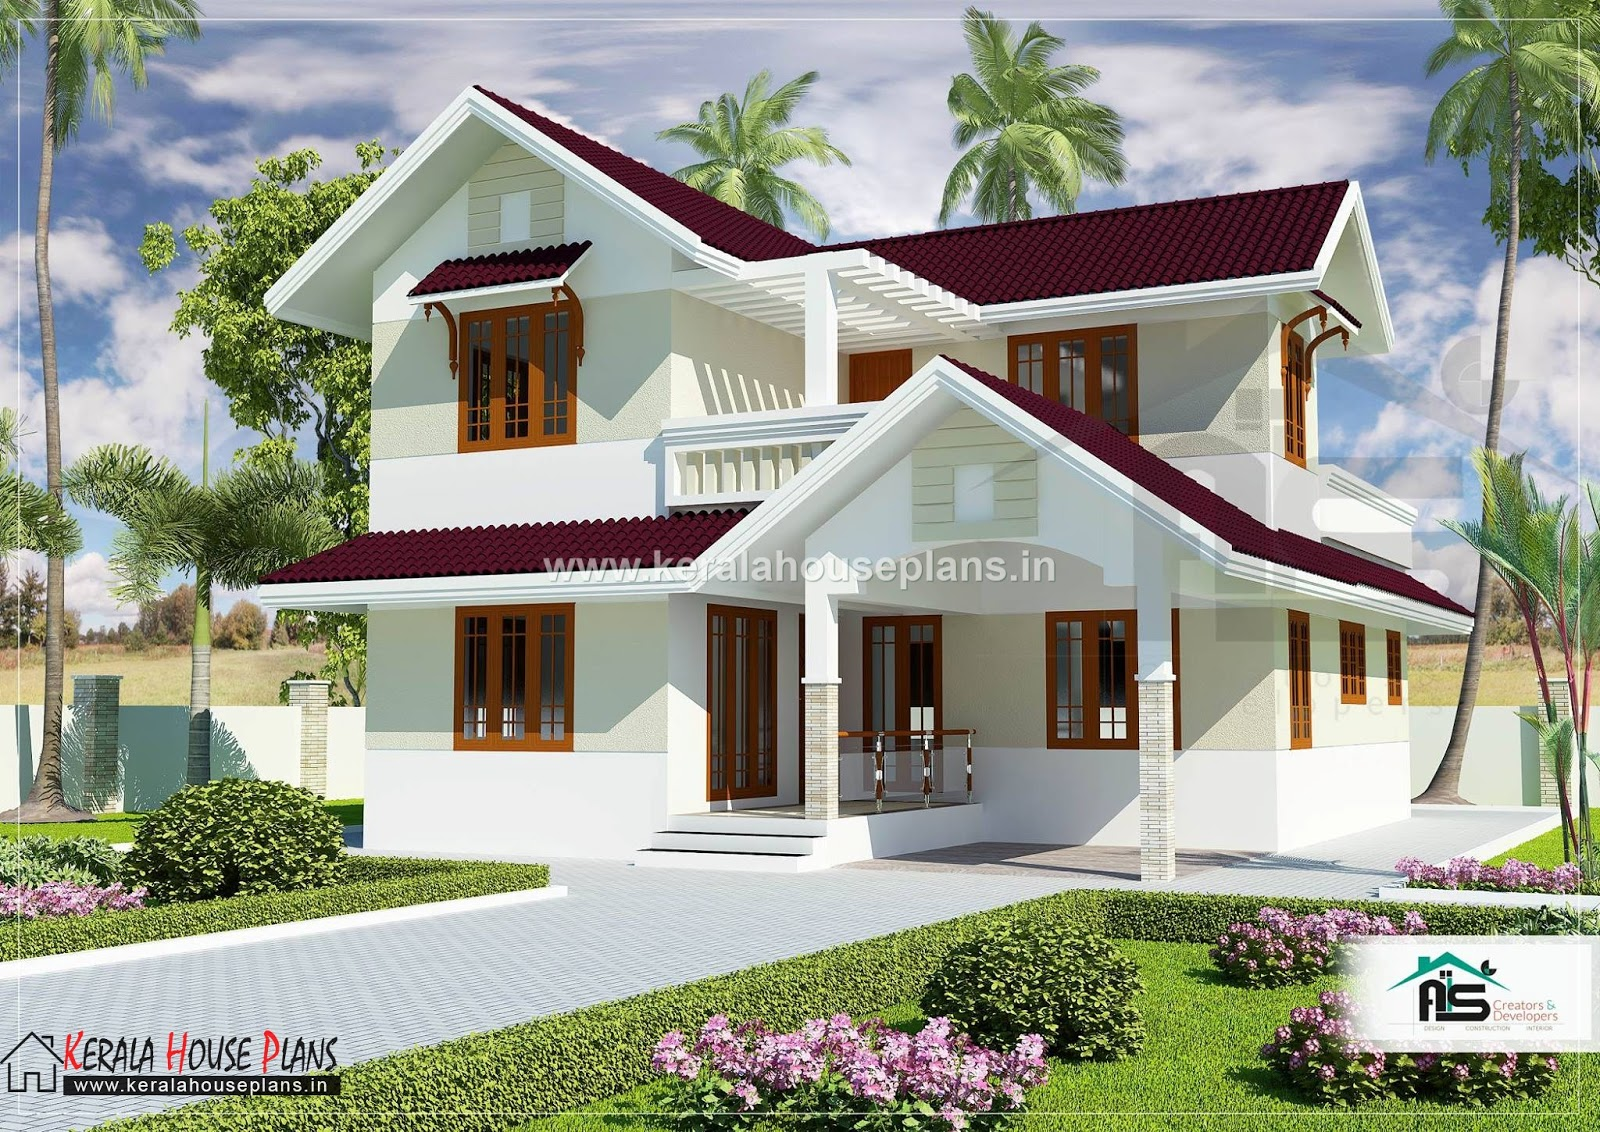 Kerala model house plans with elevation 1829 sqft kerala for House models and plans